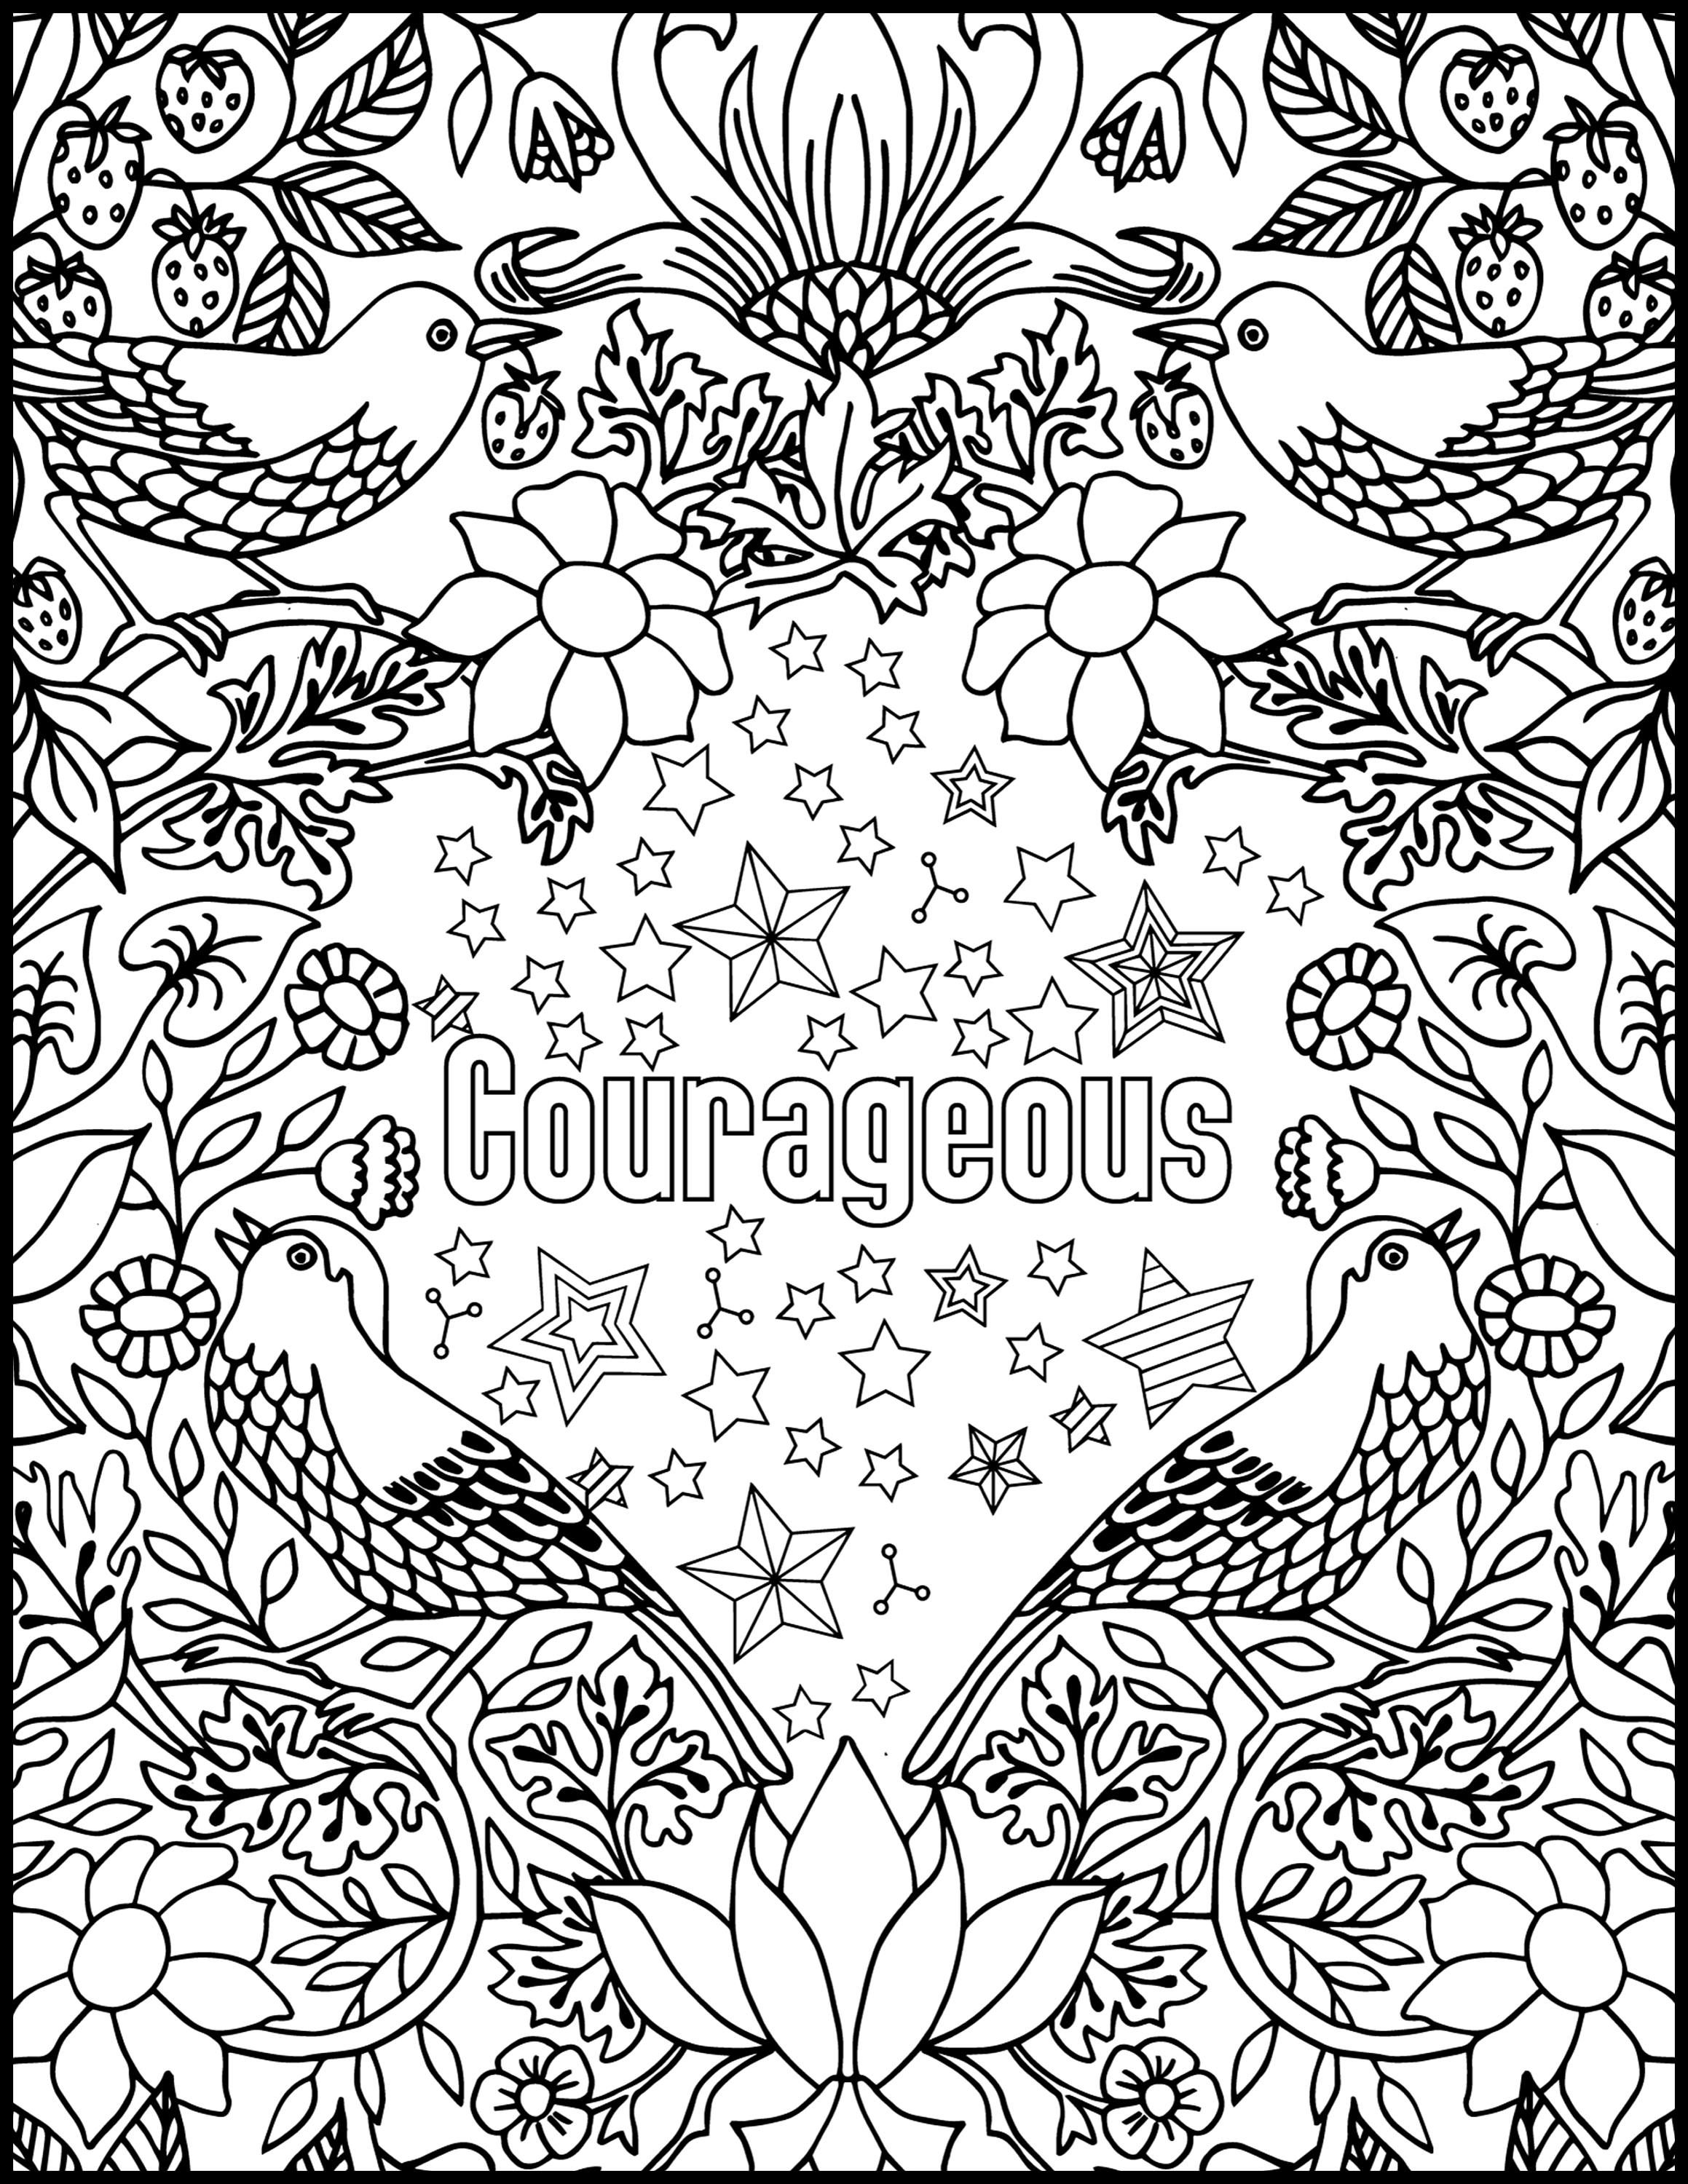 Courageous Positive Word Coloring Book Printable Coloring Book for